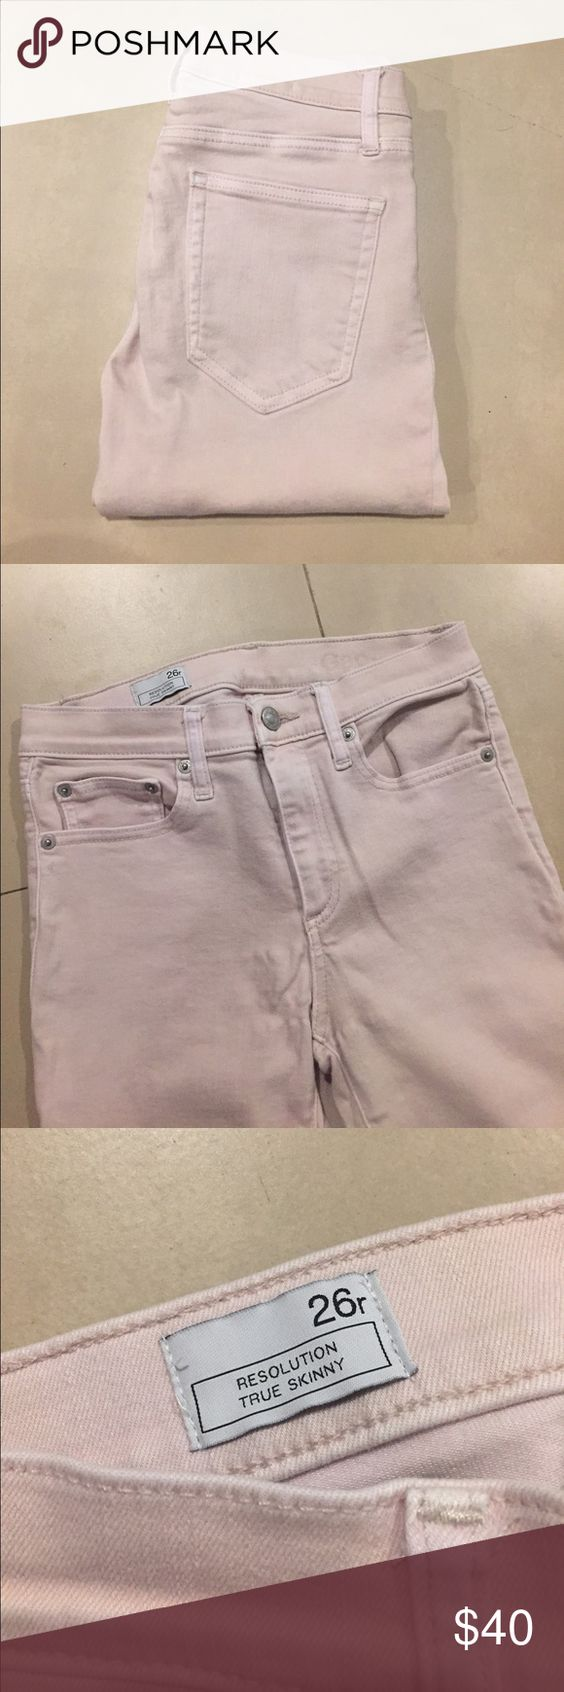 GAP jeans GAP light pink Resolution True Skinny jeans. Best condition I just don't wear them often enough! GAP Jeans Skinny